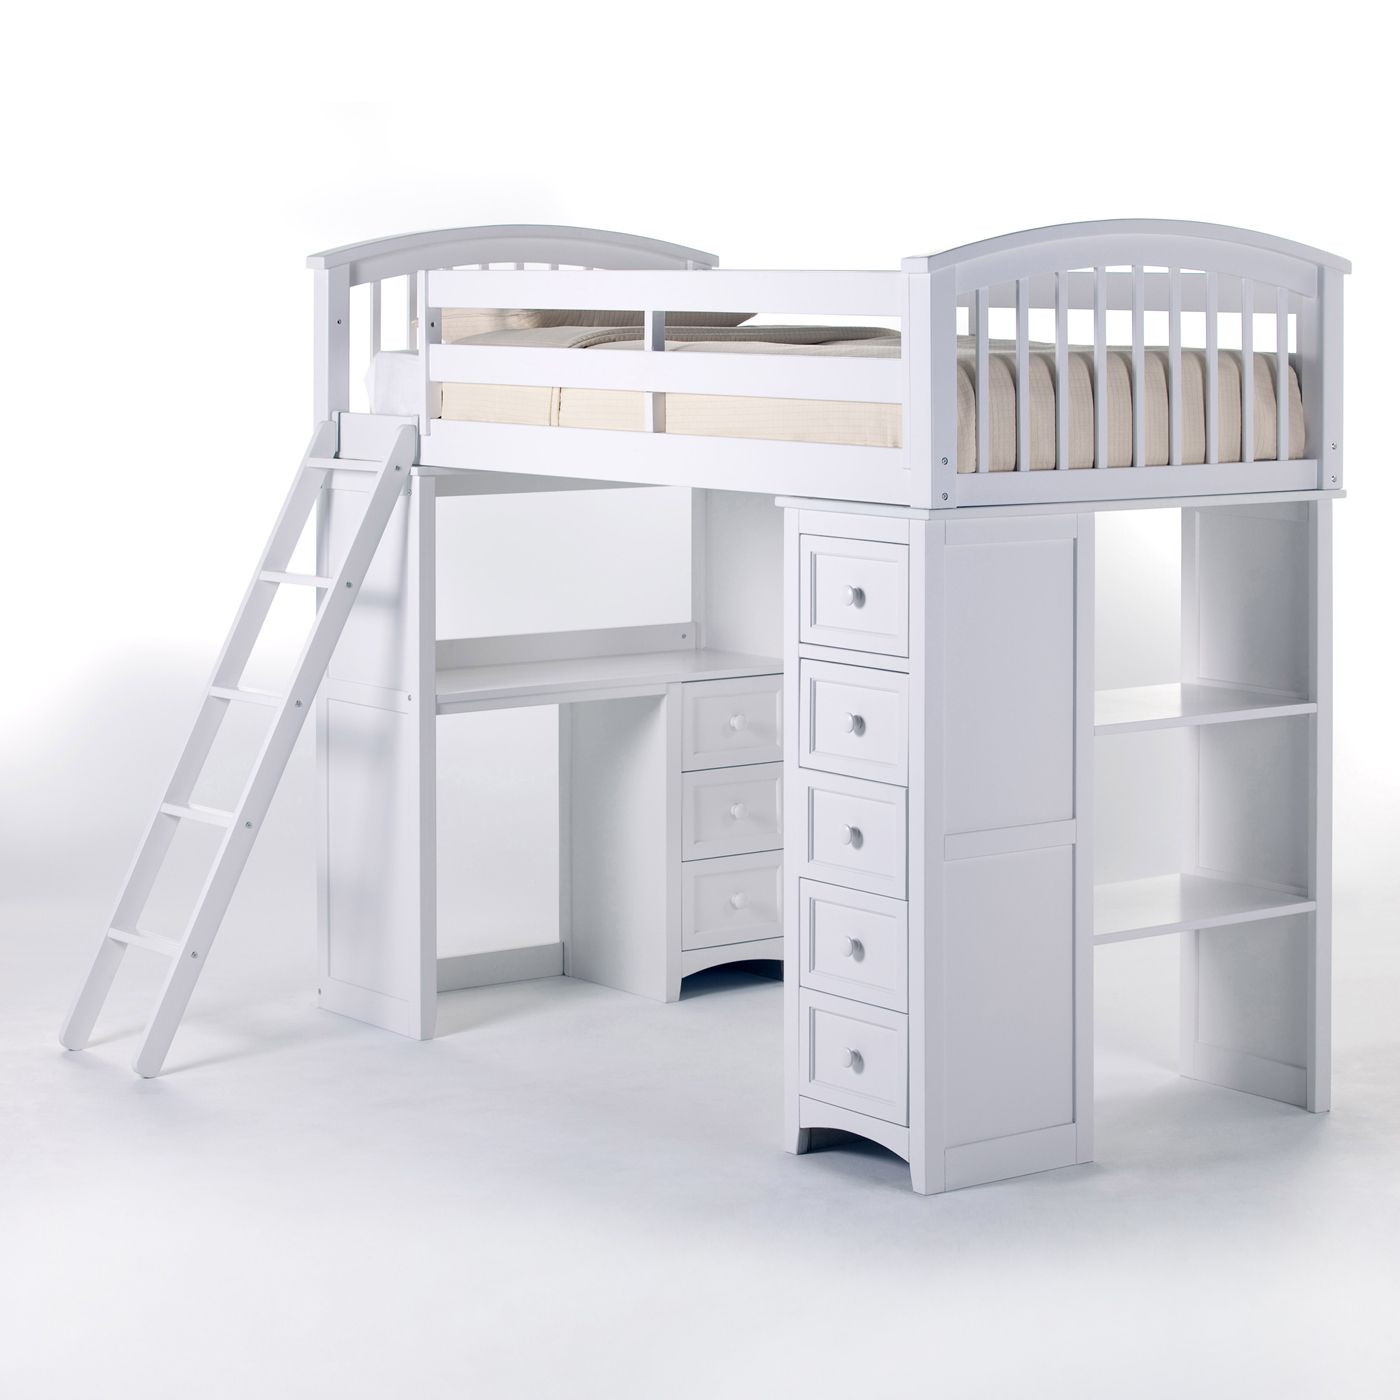 Shop Ne Kids School House Student Loft Bed At Atg Stores Browse Our